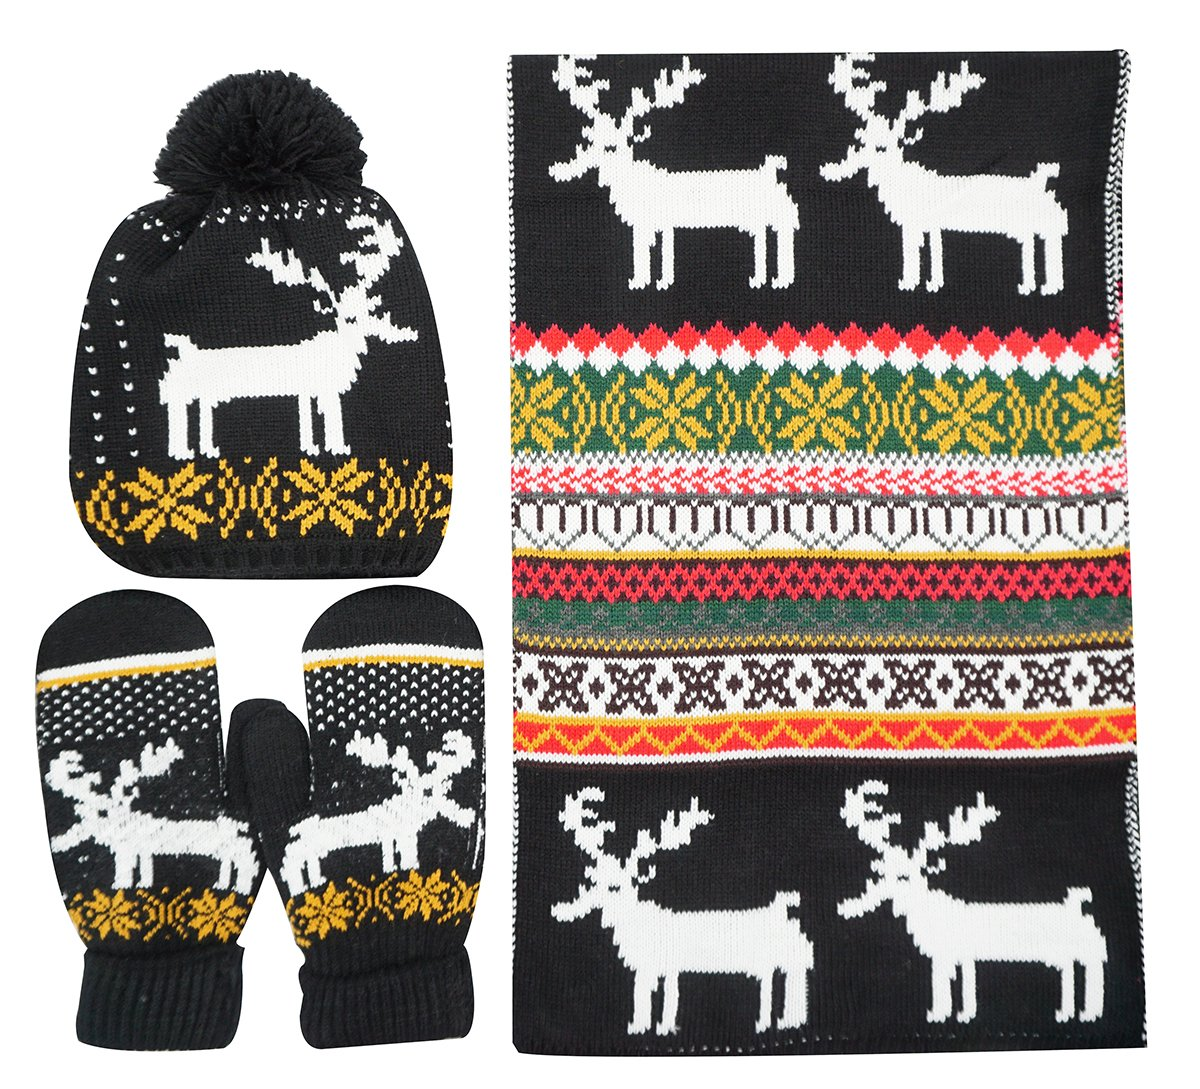 Bienvenu Women Scarf & Glove Set, Knitted Snowflake Deer Detail & Matching Cap,Black